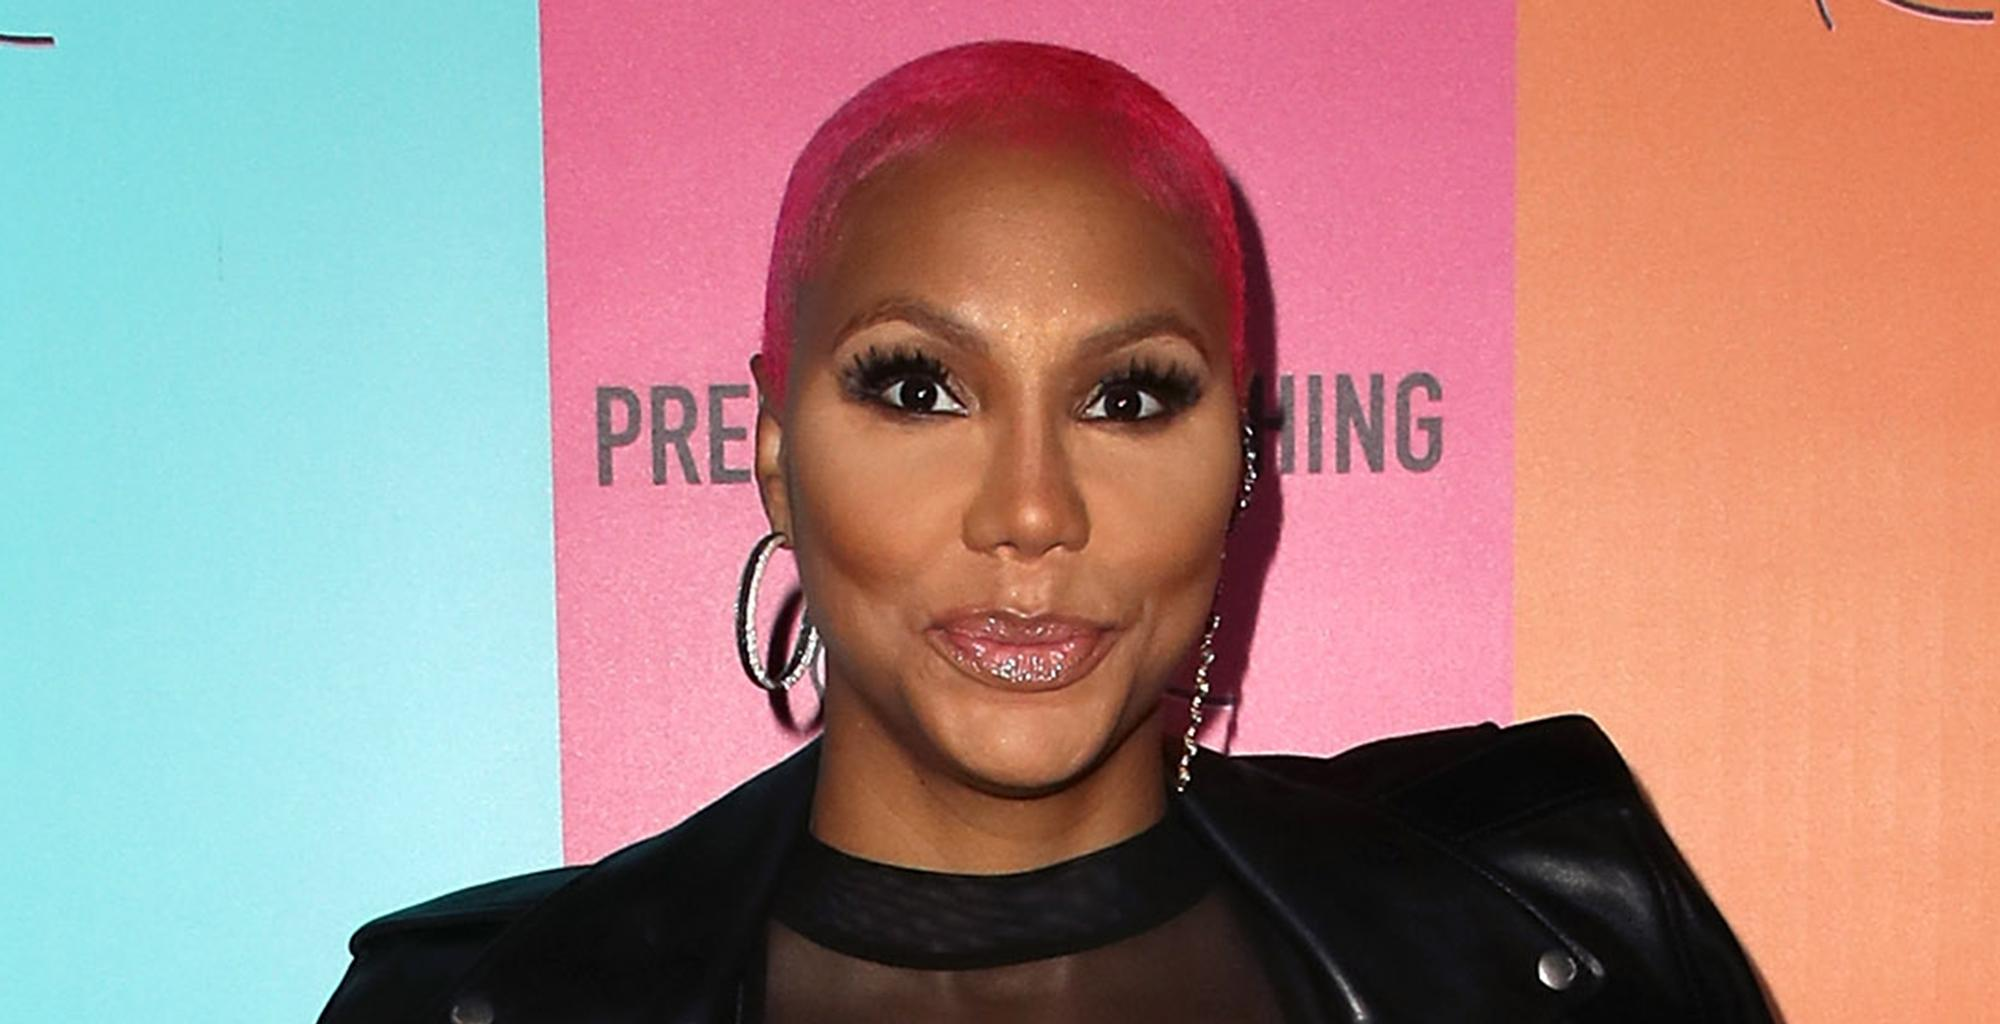 Tamar Braxton Impresses Fans With A Message About Herself - Check It Out Here Along With The Video She Shared